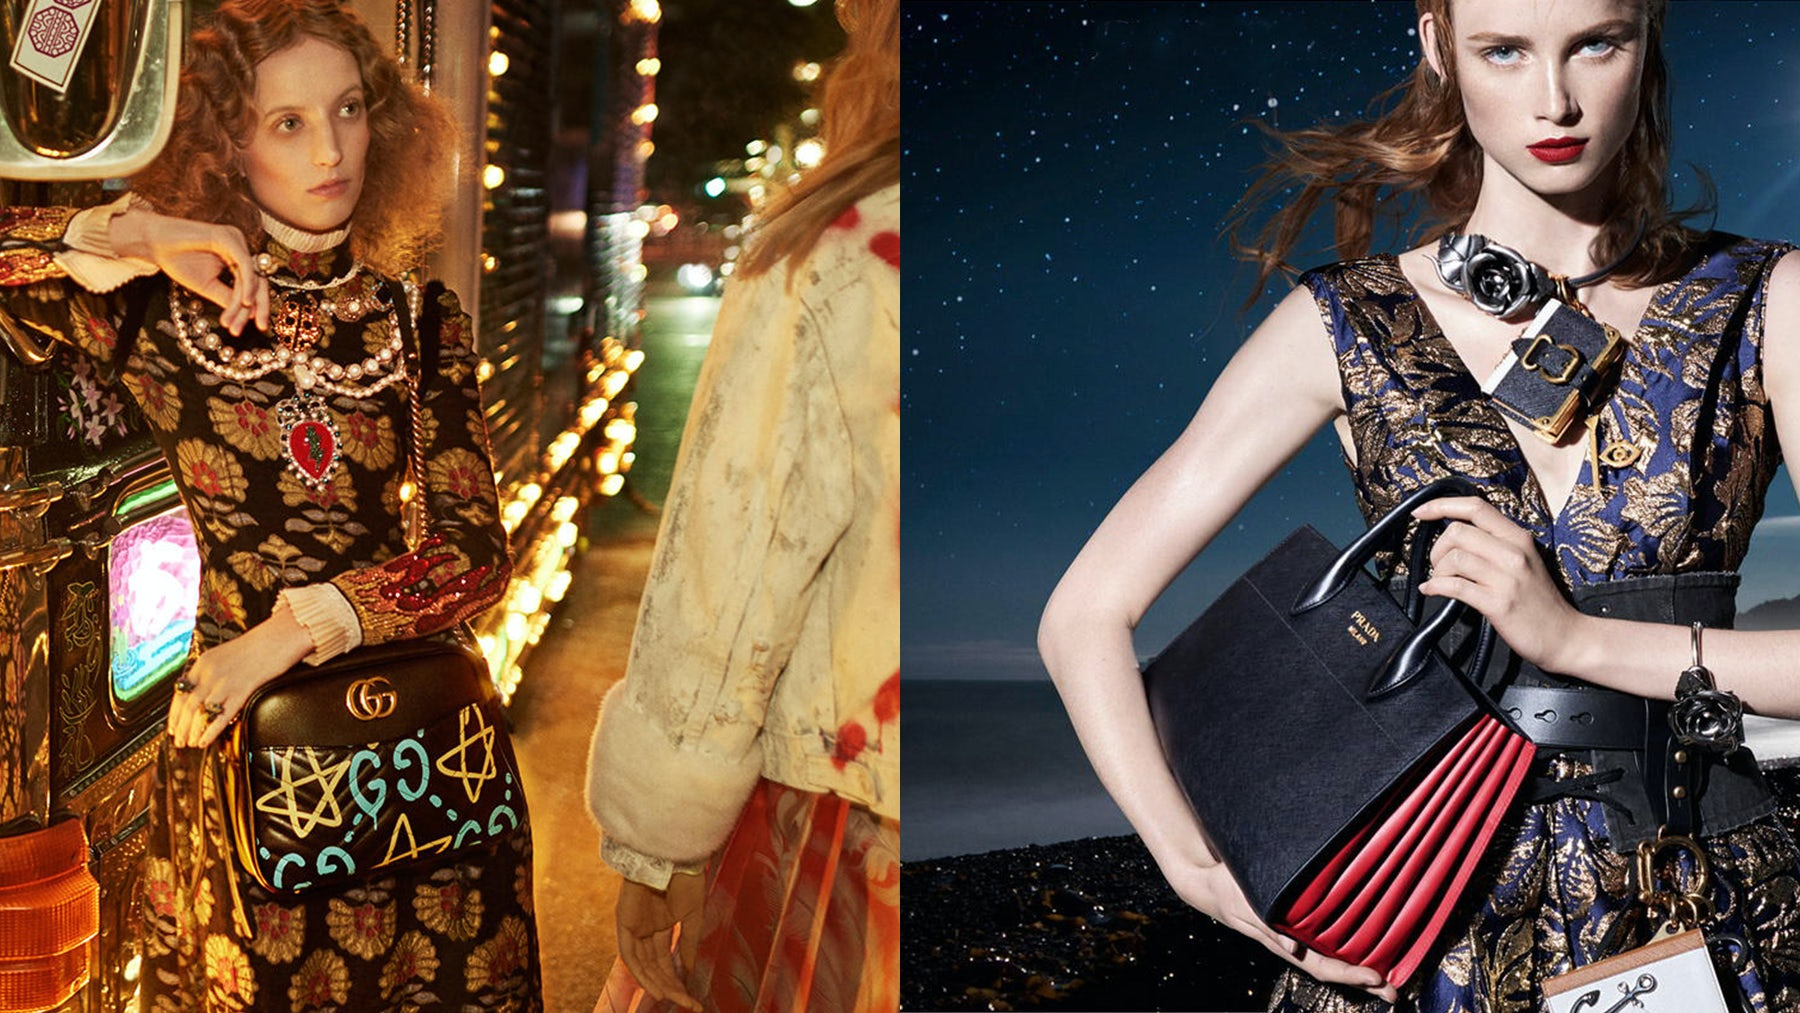 Gucci Among World's Hottest Fashion Brands, While Prada Cools